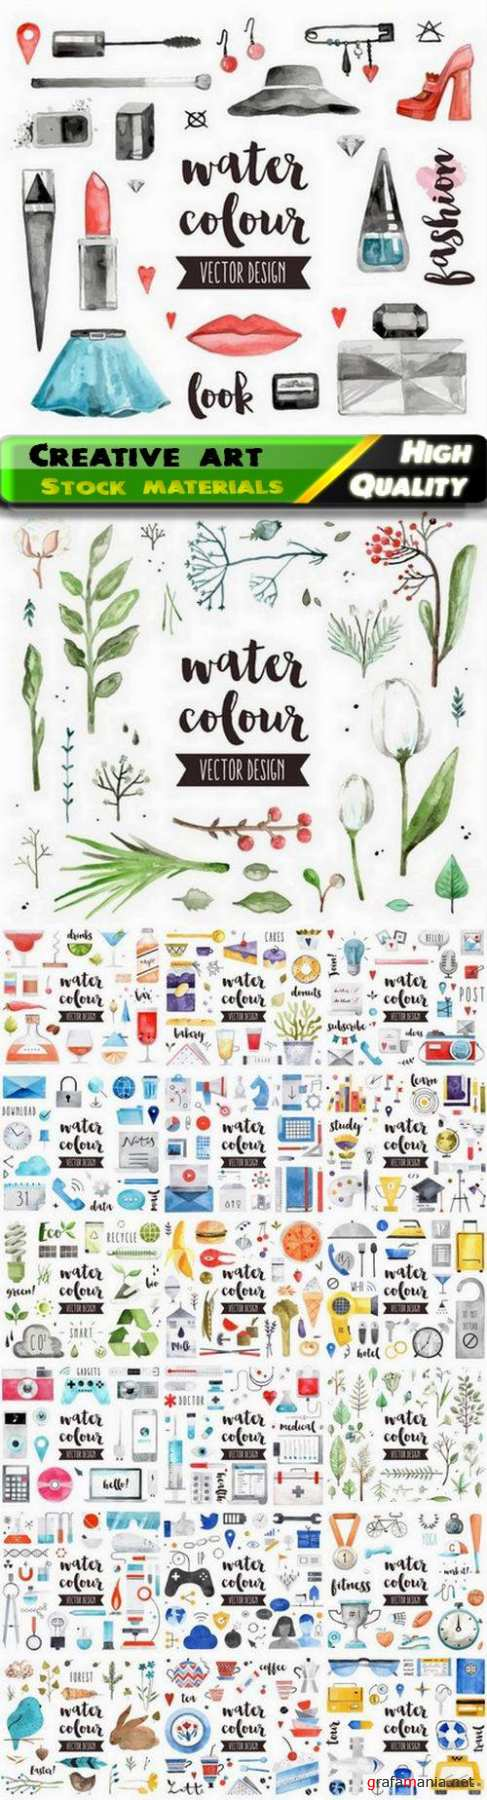 Creative art of watercolor illustration of elements and objects 20 Eps